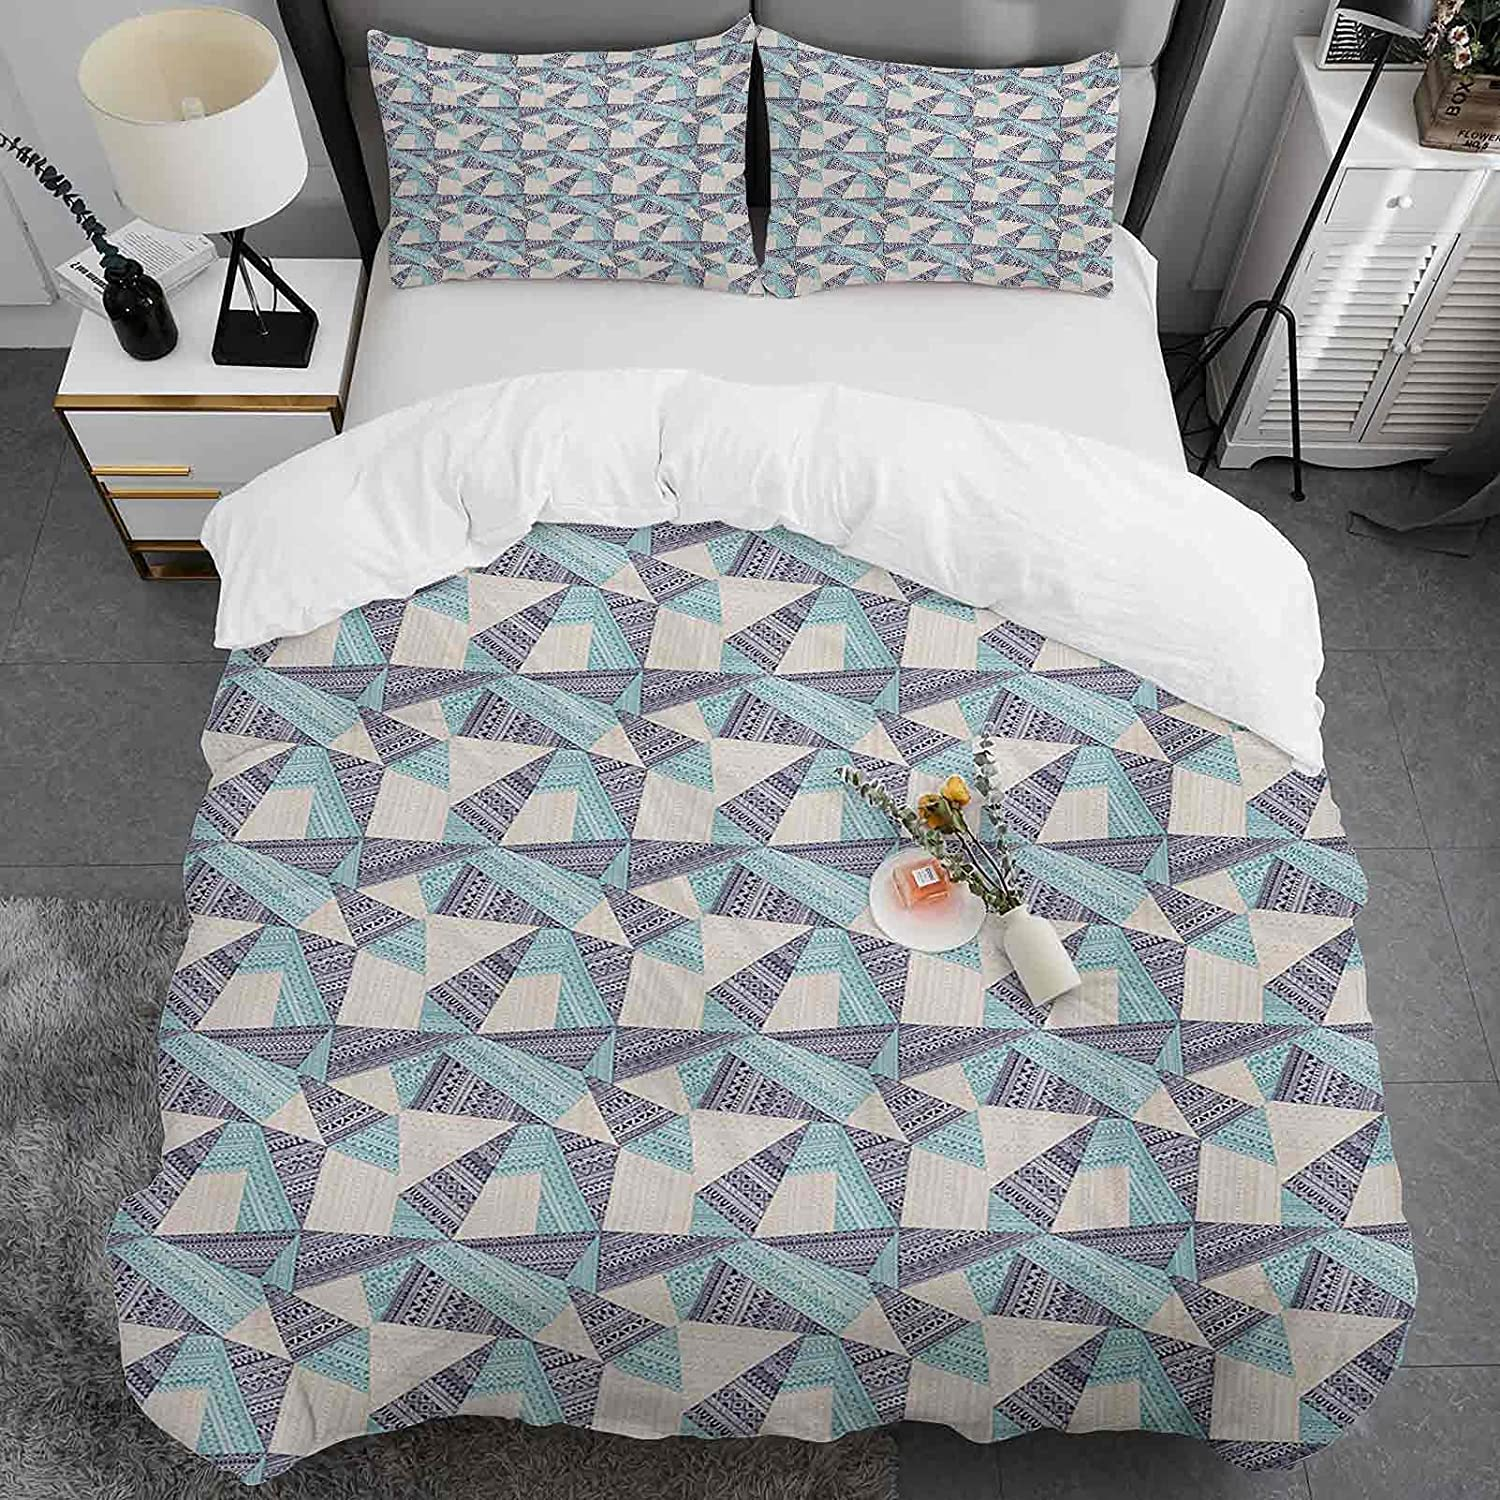 Abstract Duvet Cover Full Large discharge sale Size Culture Influences Tribal 25% OFF Arabic